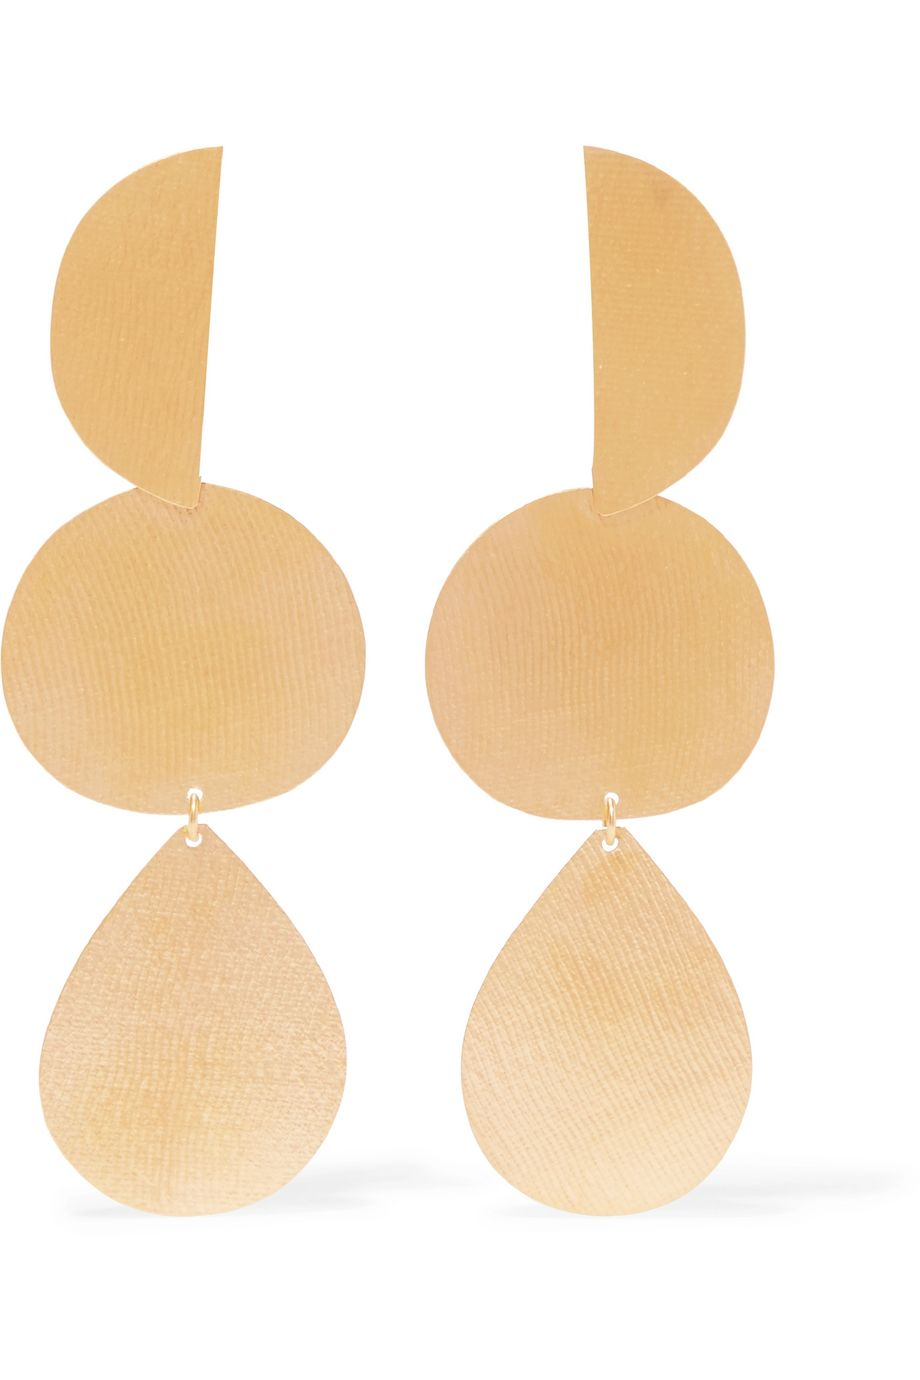 Annie Costello Brown Thea gold-tone earrings